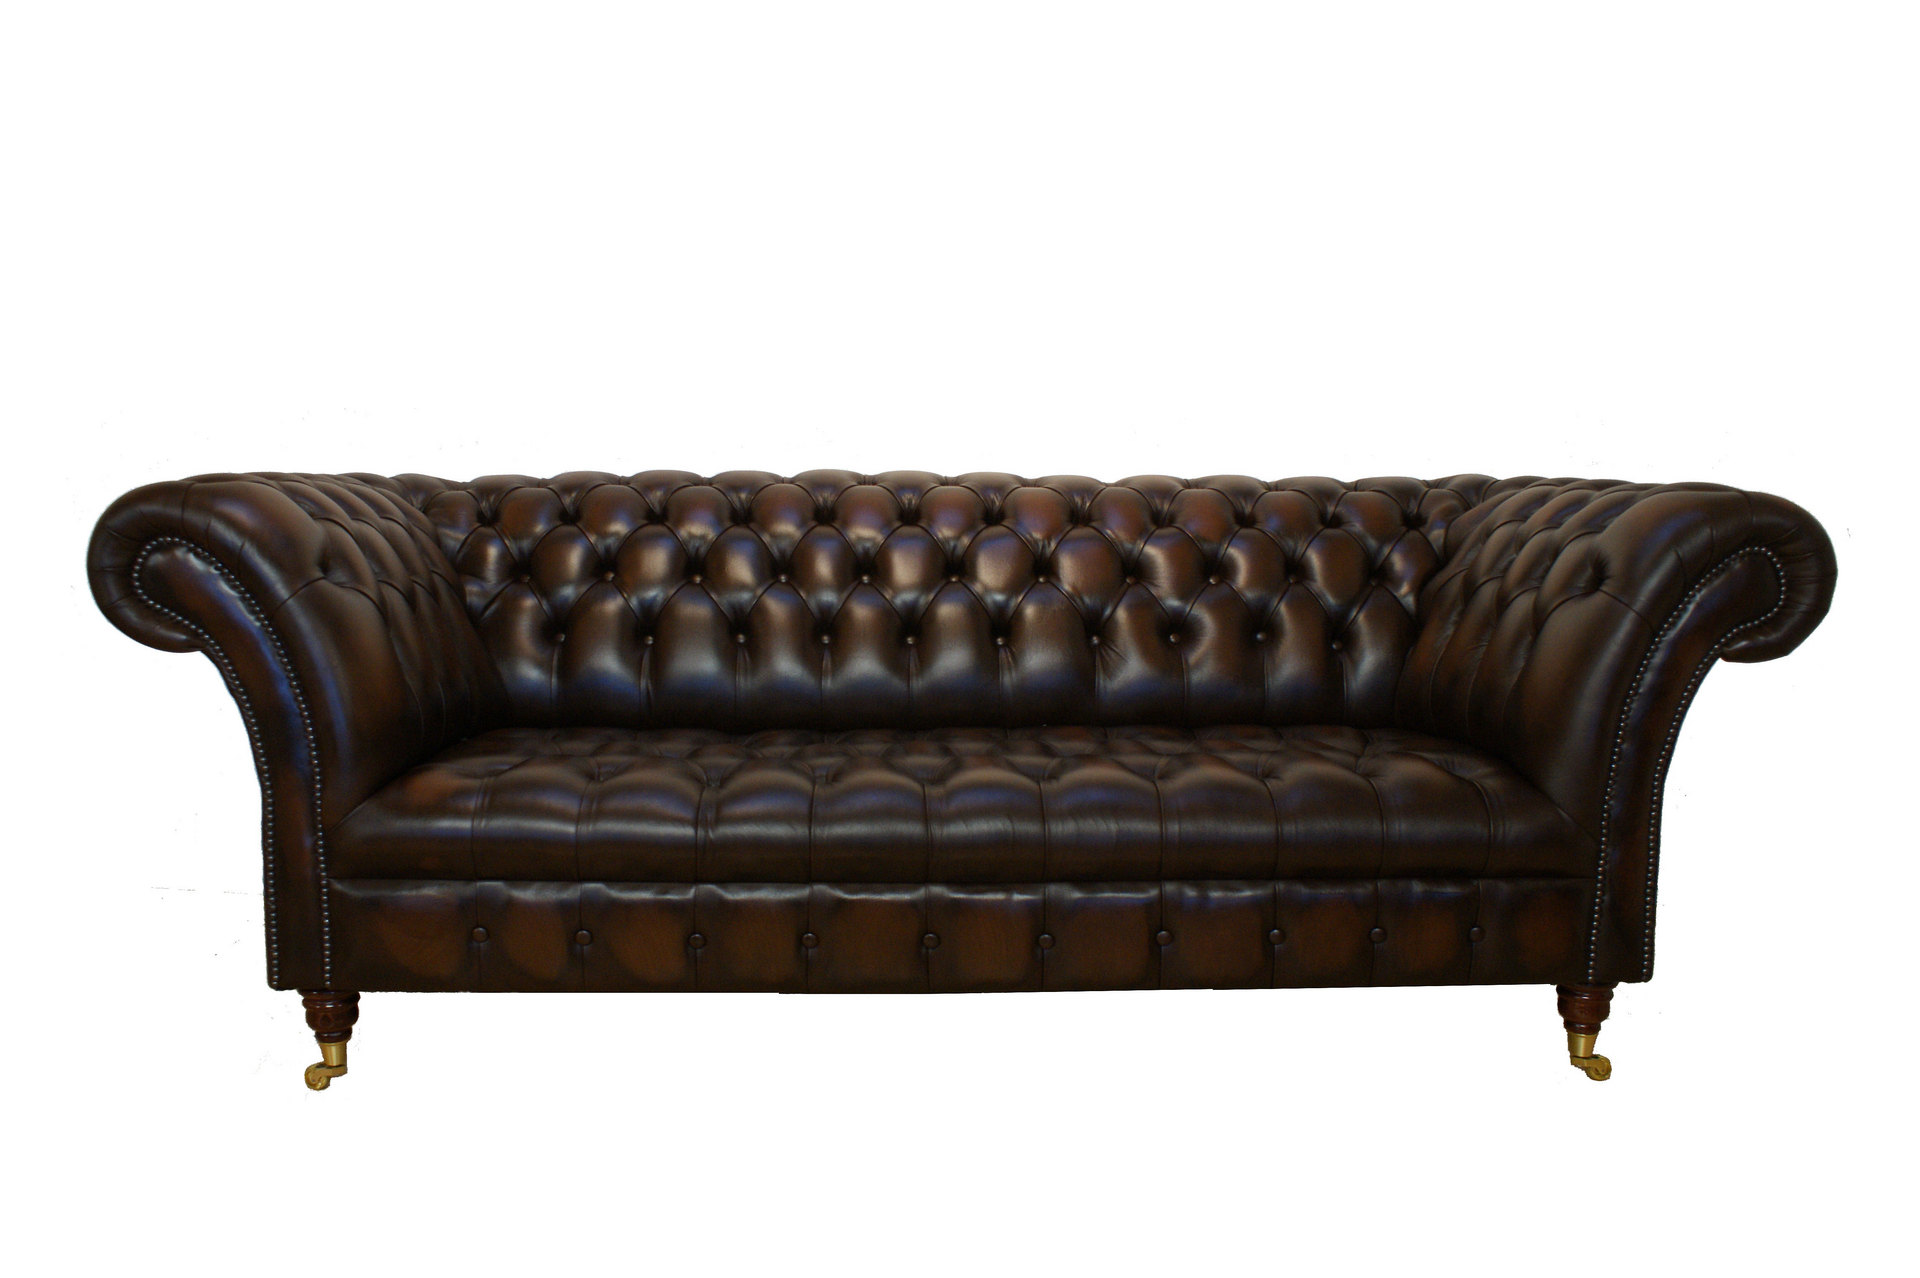 How to buy a cheap chesterfield sofa designersofas4u blog for Buy a cheap couch